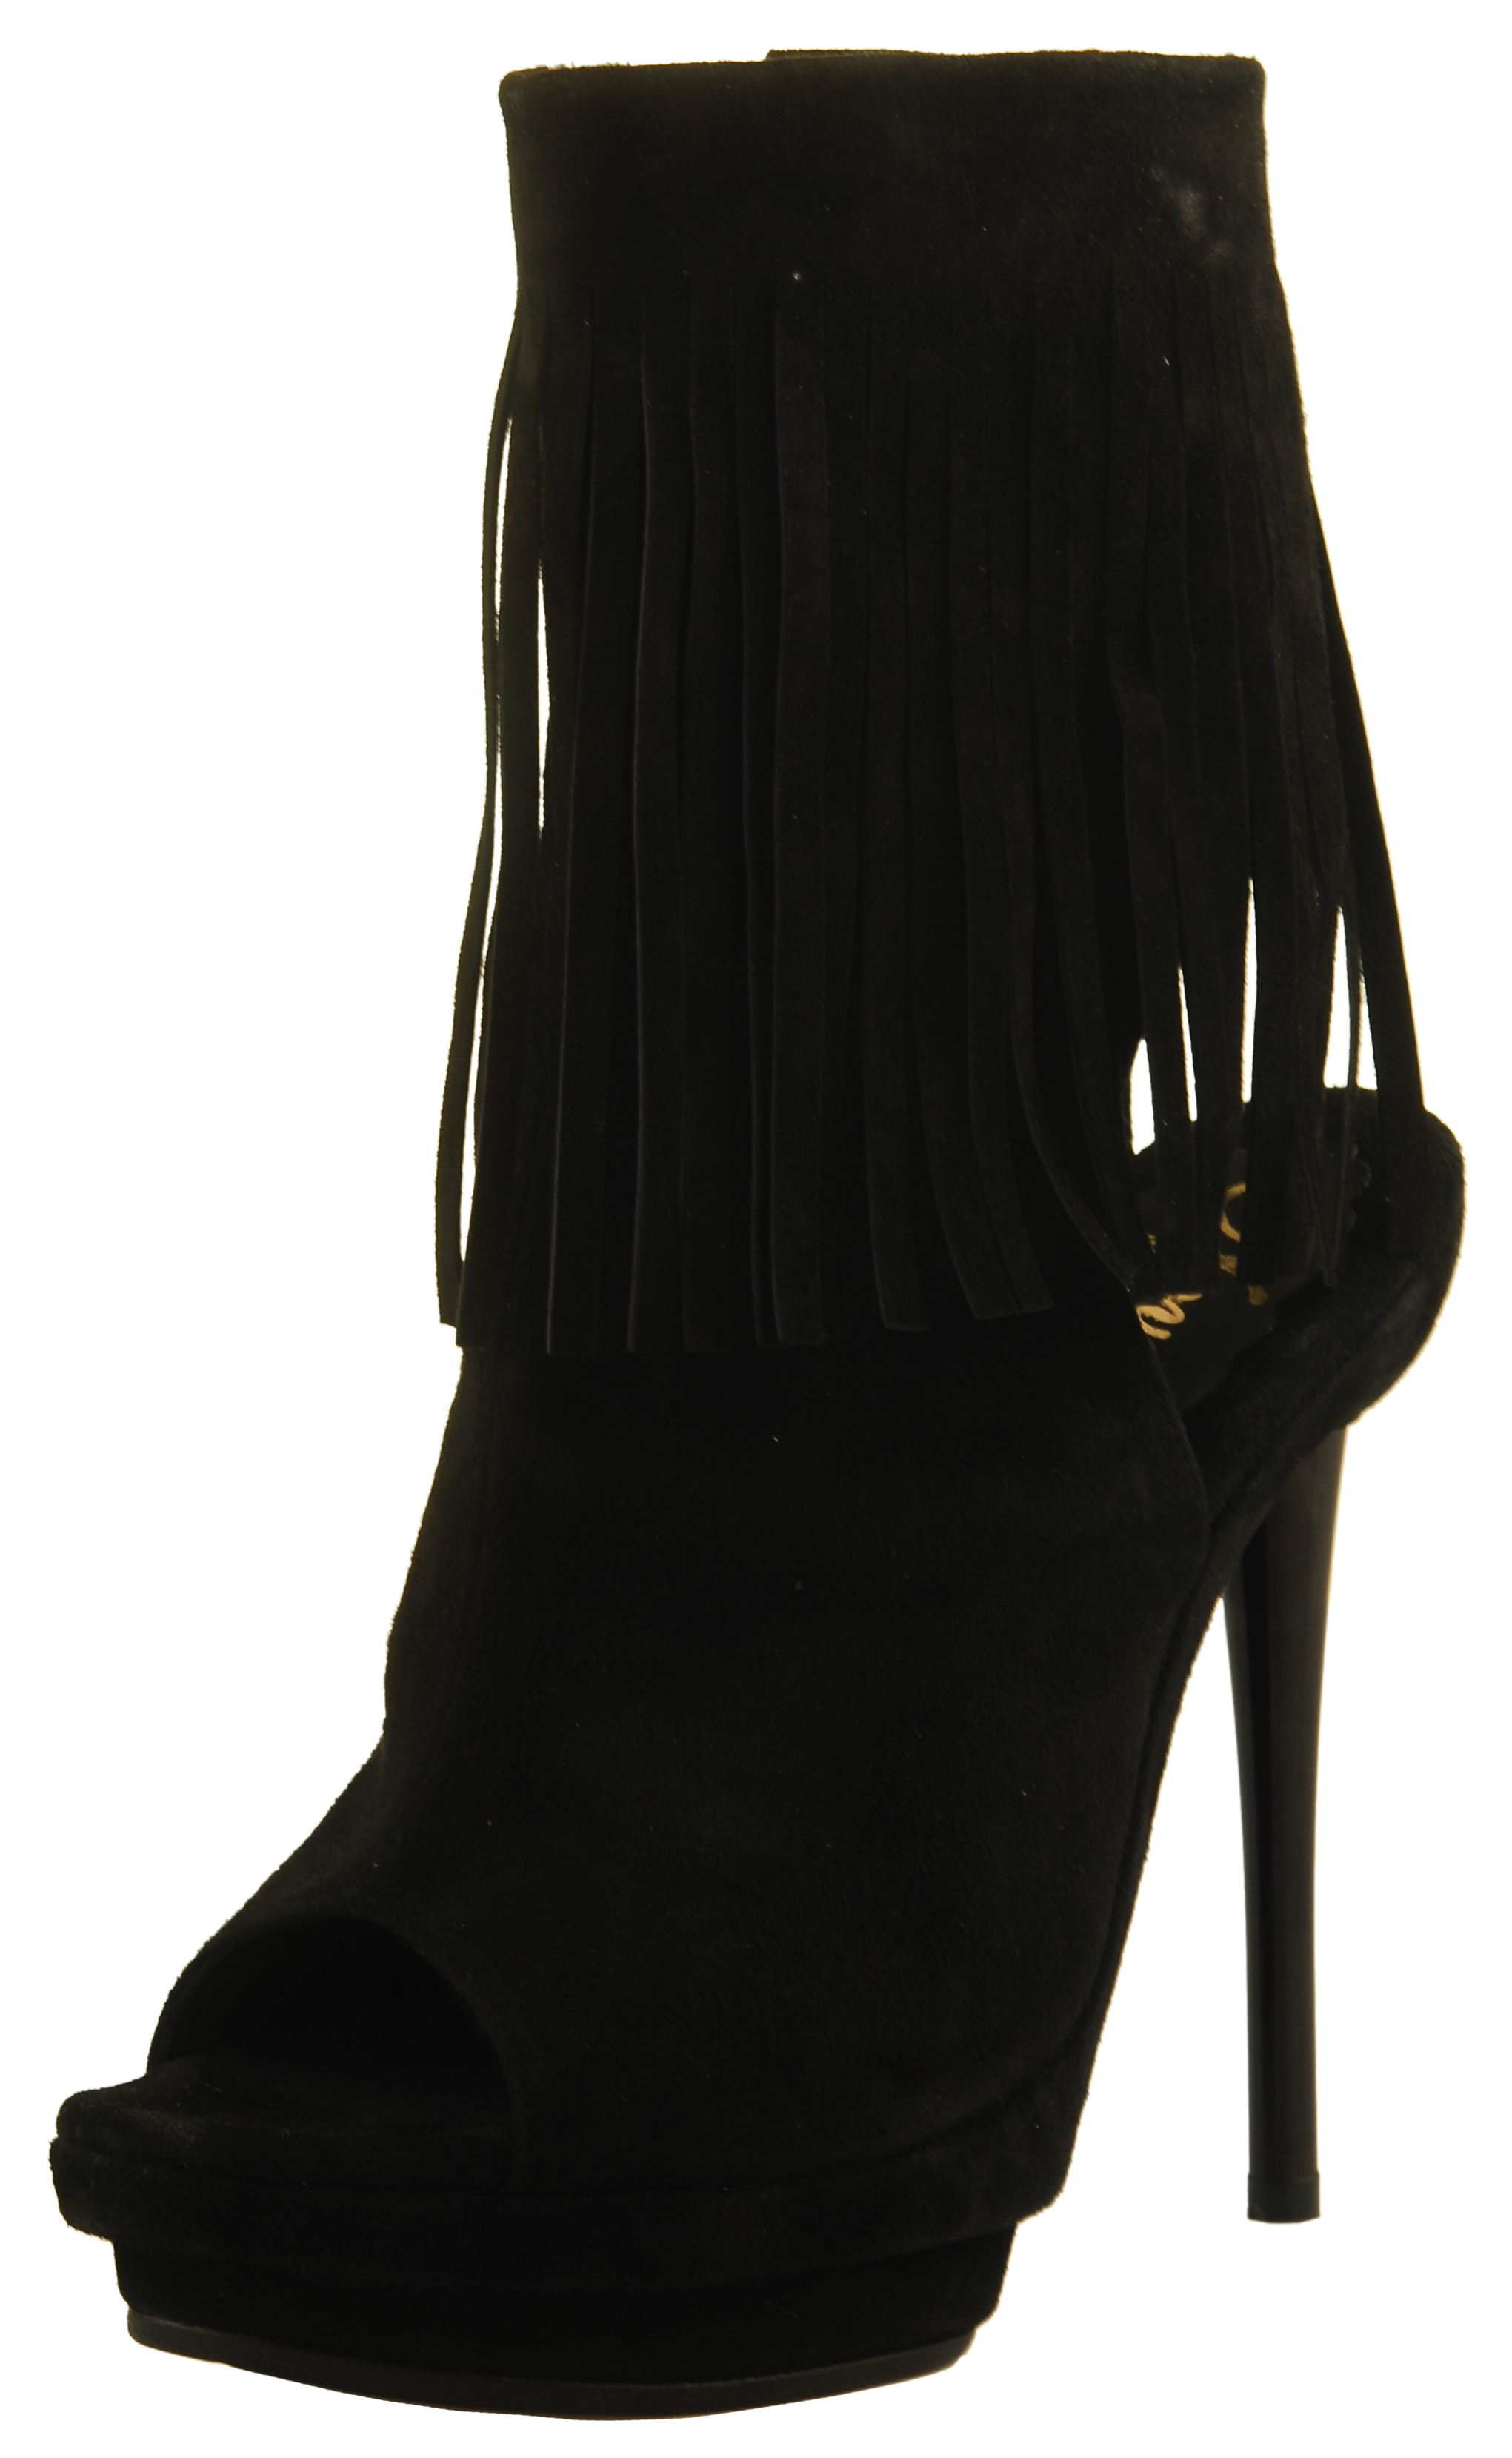 Emily Sandal Boot - Black Suede